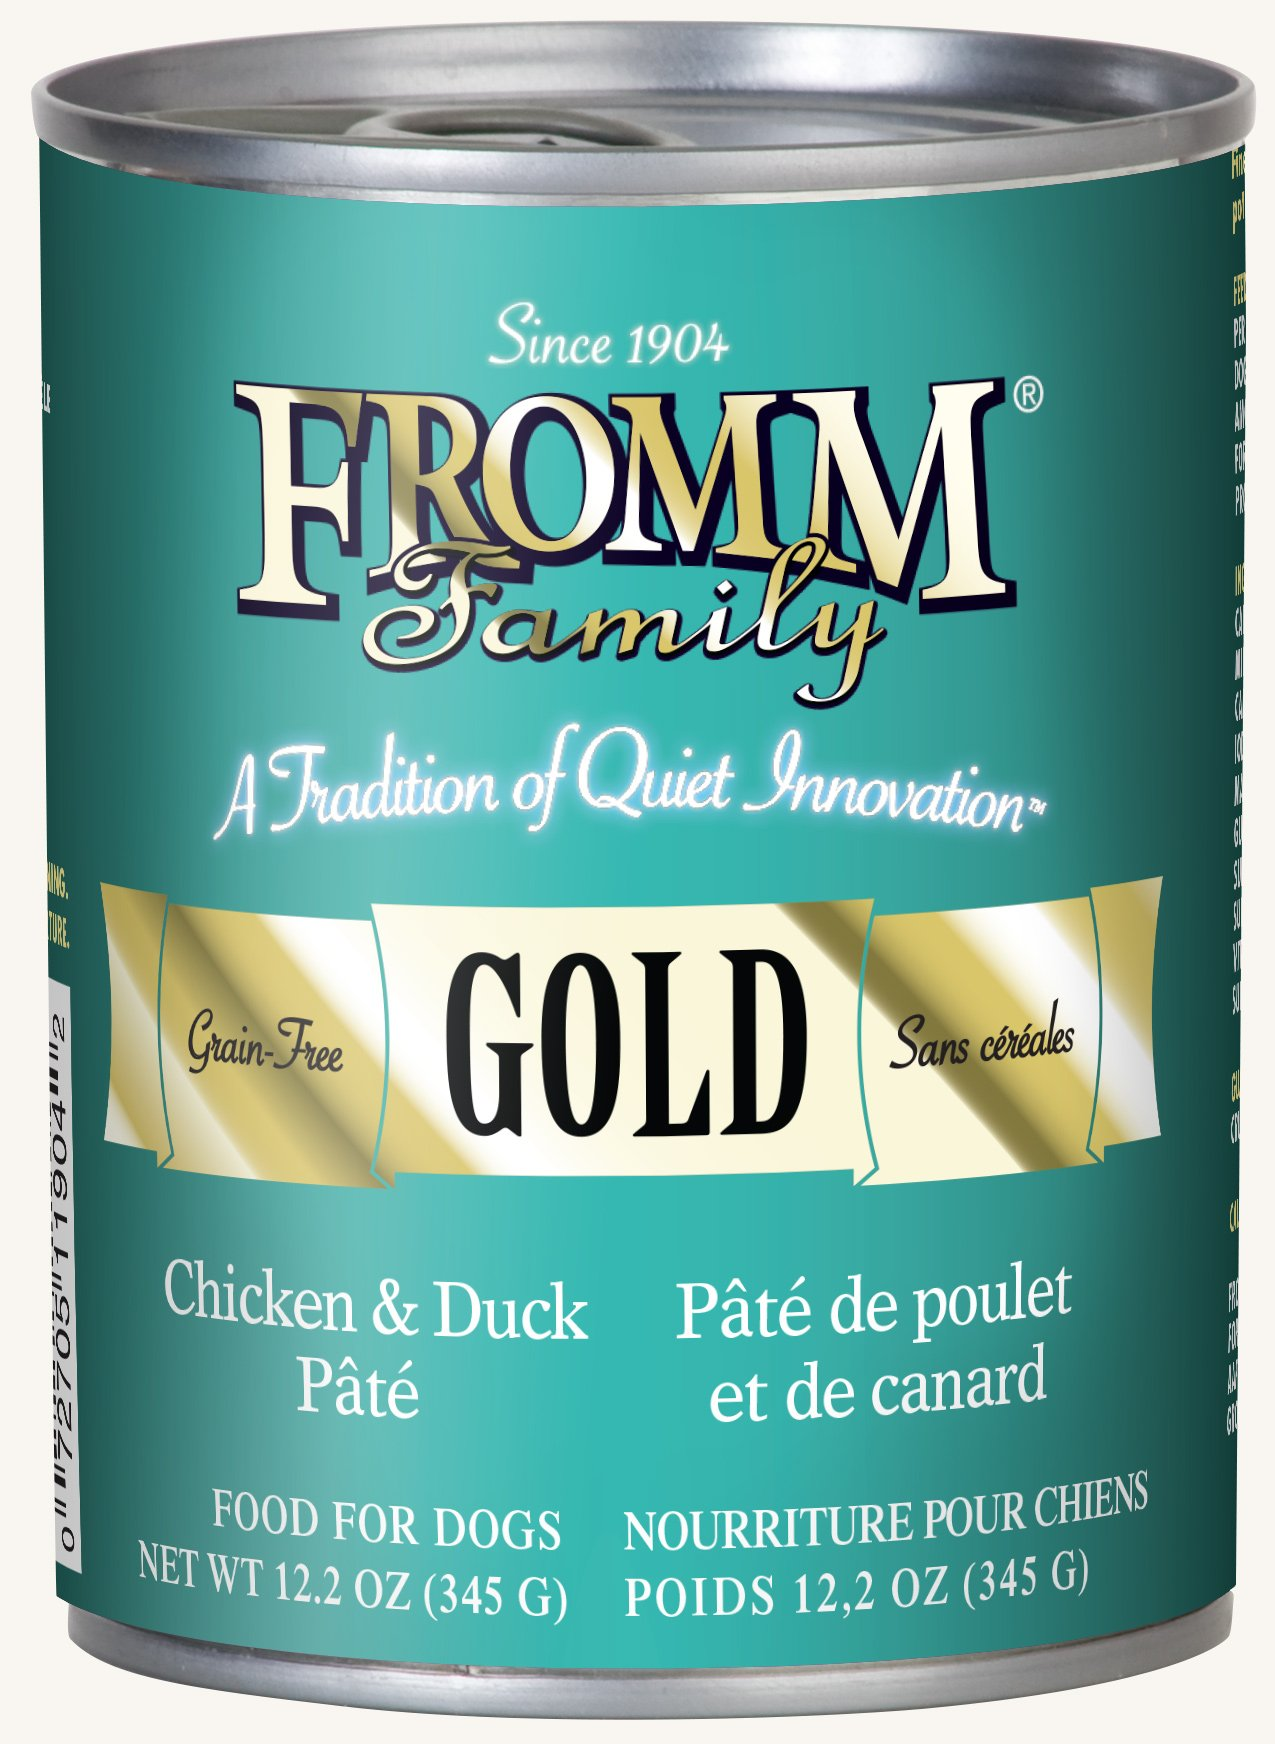 Fromm Gold Chicken & Duck Pâté 12.2oz / case of 12 by Fromm